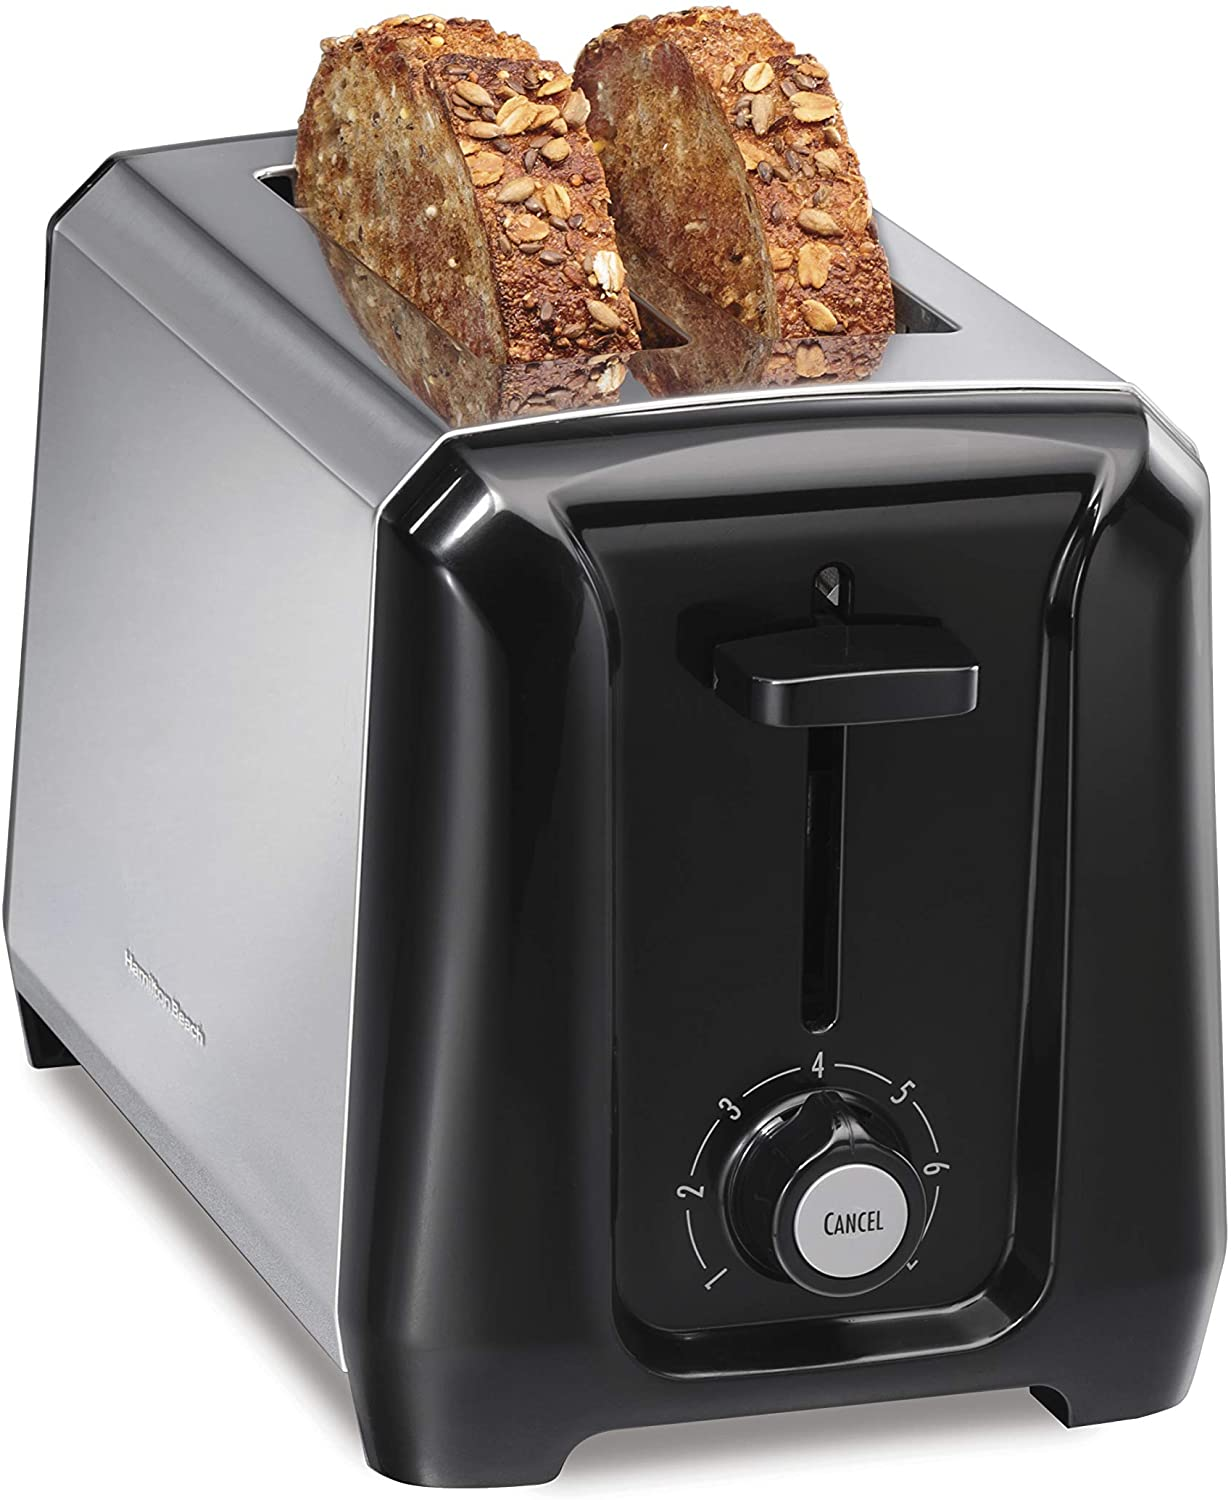 Hamilton Beach 2-Slice Extra-Wide Toaster